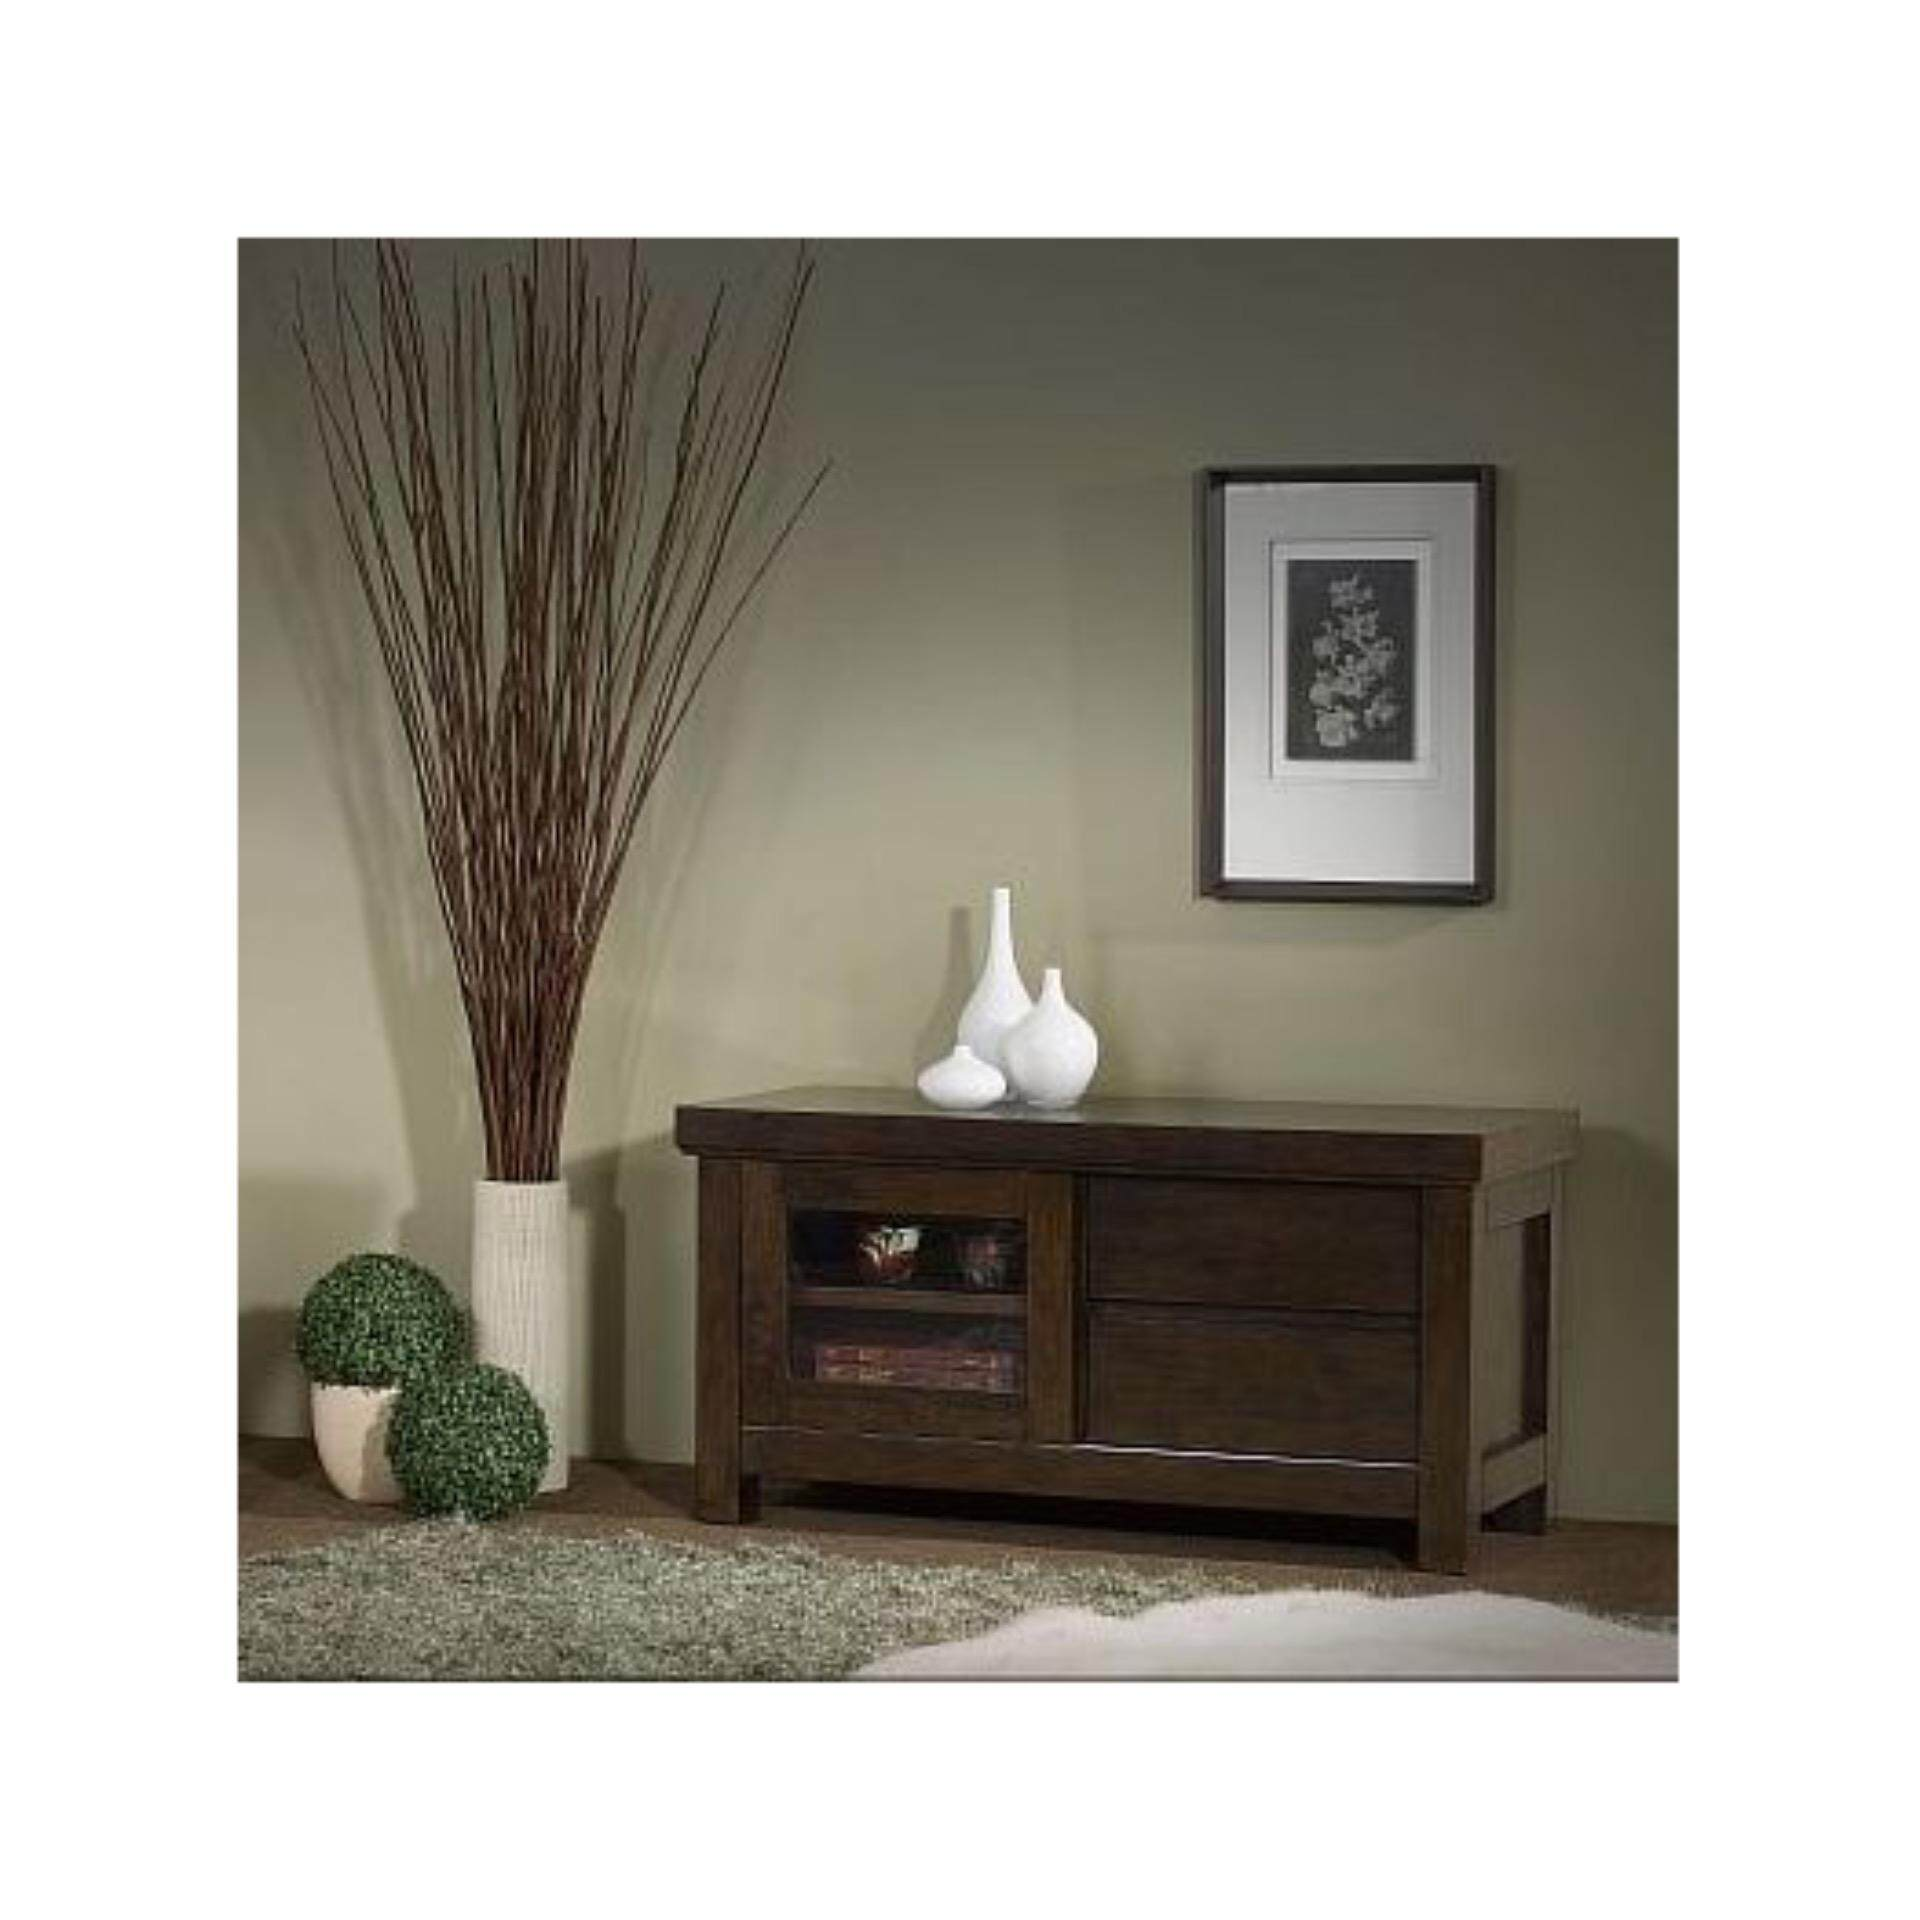 Ready-Fixed Solid Wood TV Cabinet (Oak Color) 1716 L1200 X D510 X H610 With 5 Years Warranty